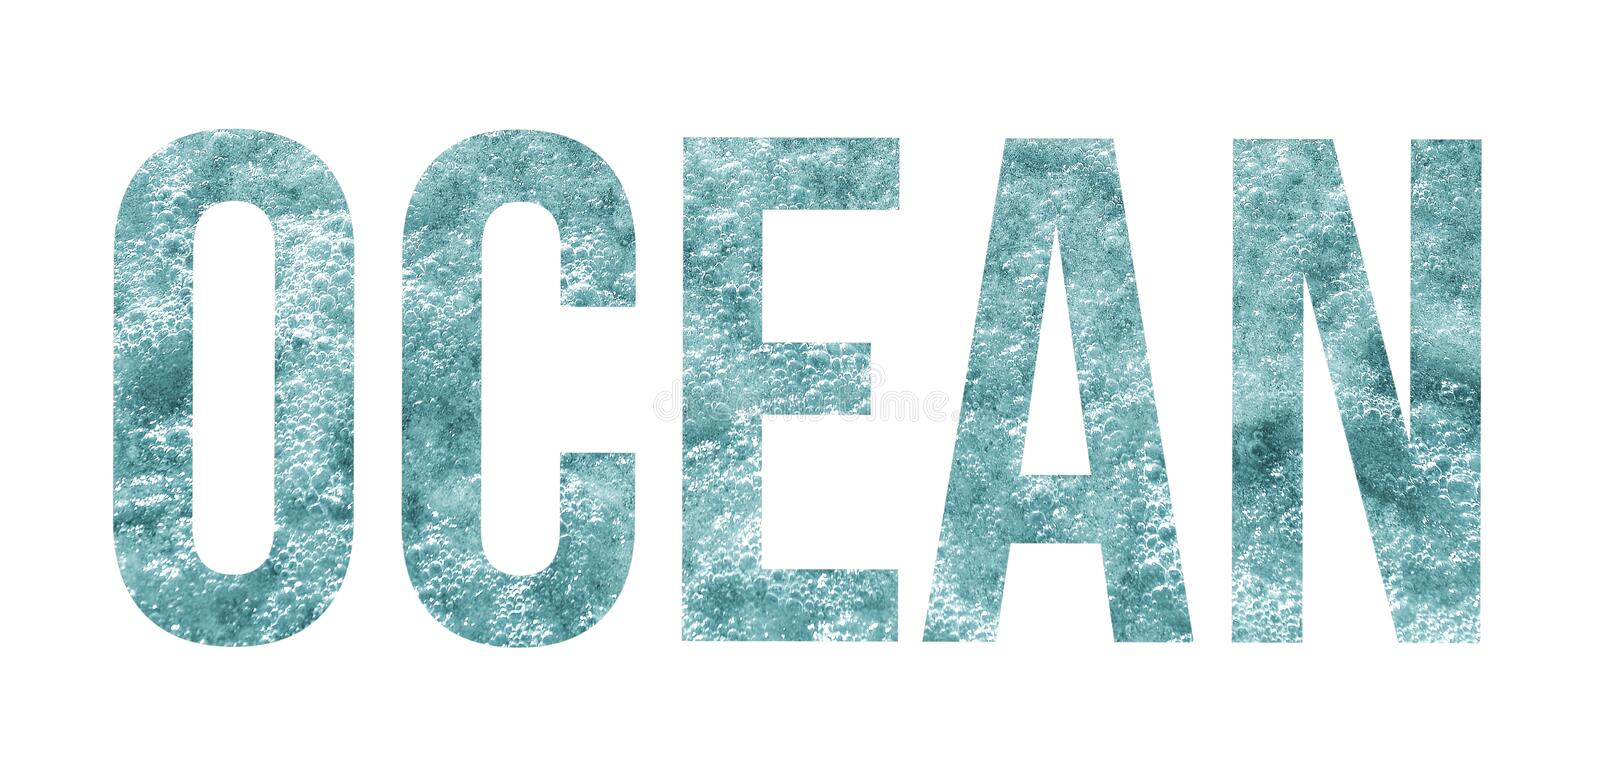 Overlay of the word ocean on background of turquoise sea water with waves and air bubbles isolated on white background. Summer sea holidays concept. Ocean word stock photo